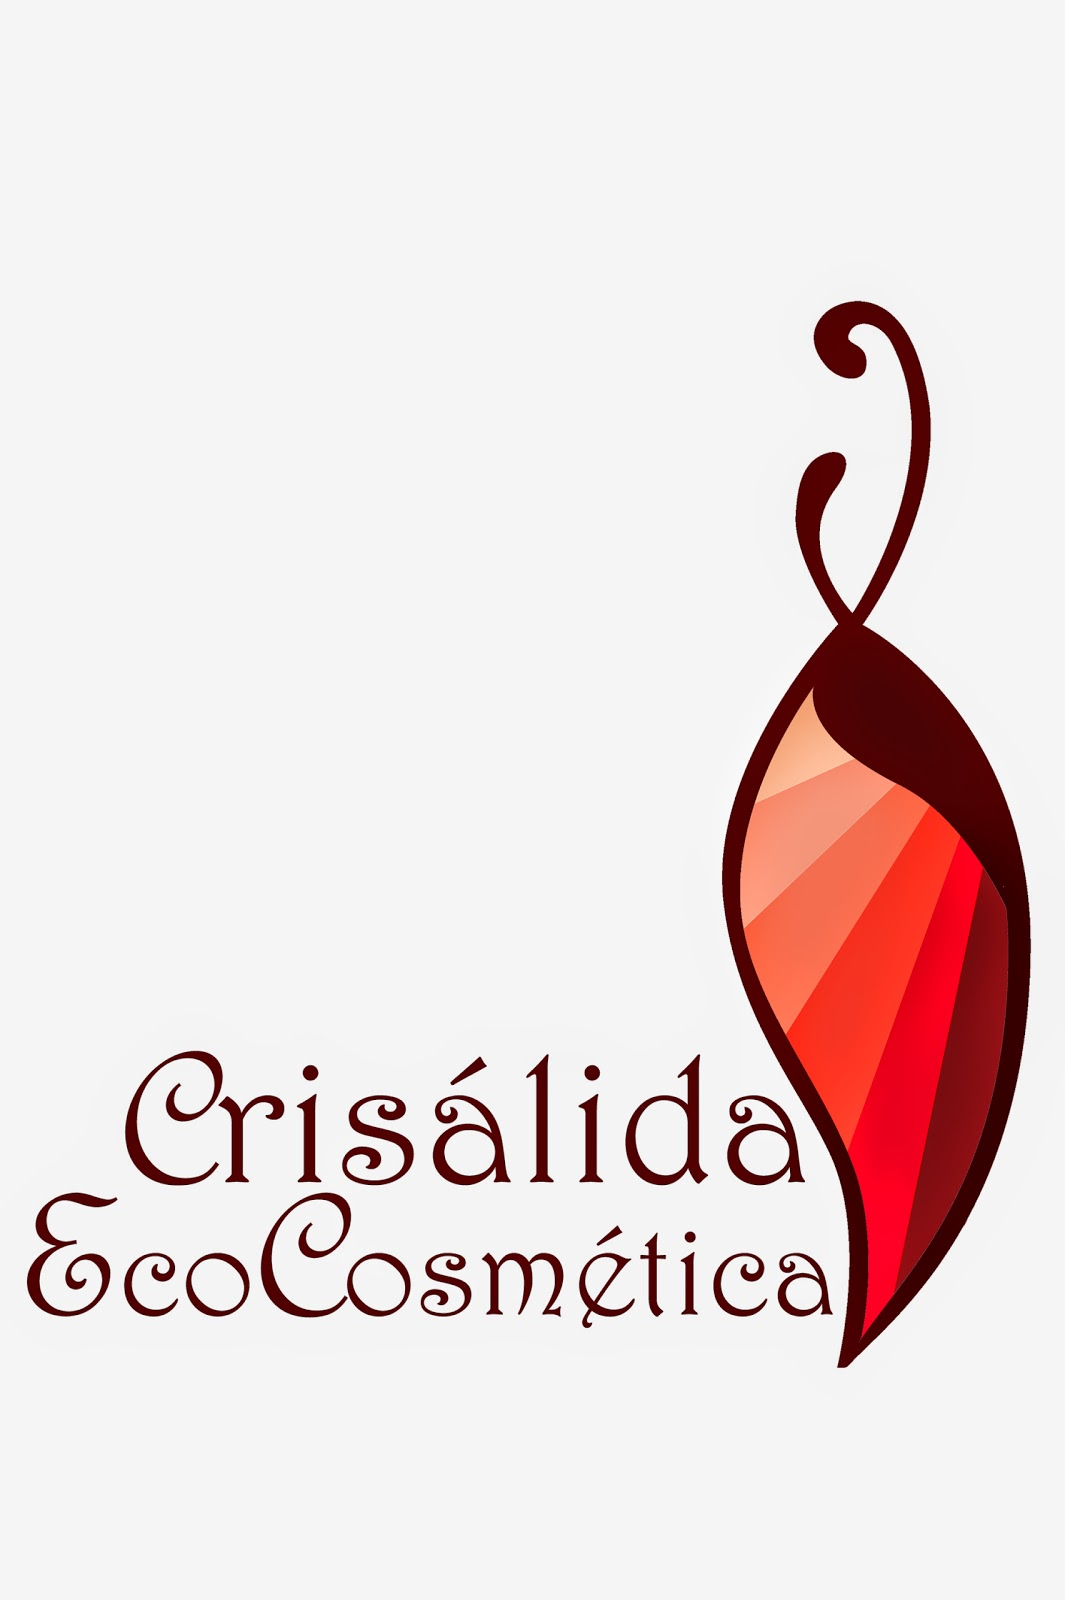 http://www.crisalidaecocosmetica.com/index.php?route=product/category&path=61